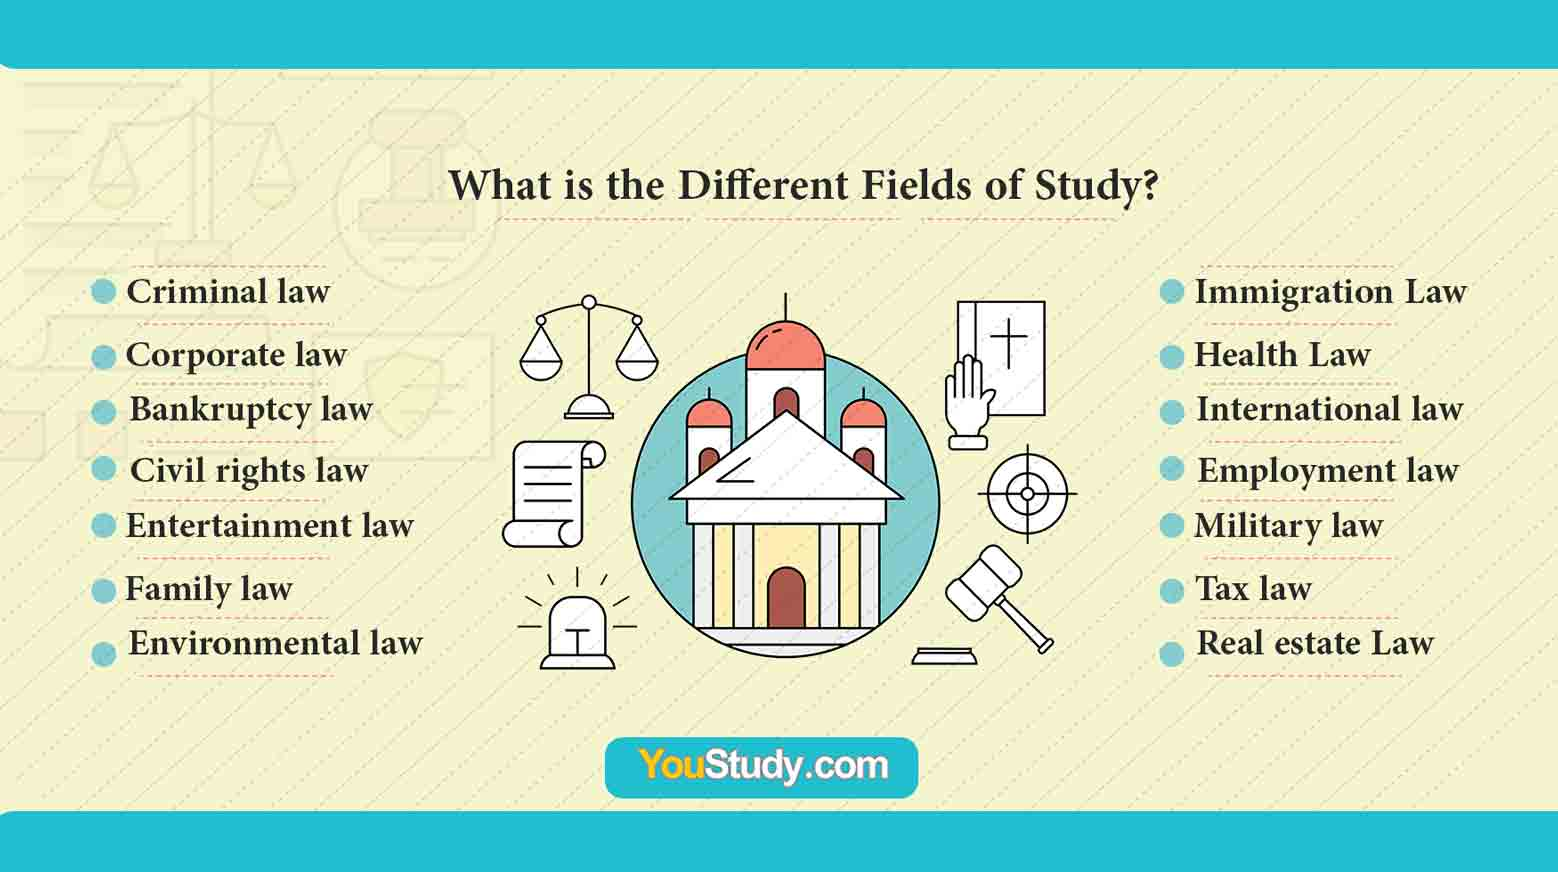 What are the Different Fields of Study